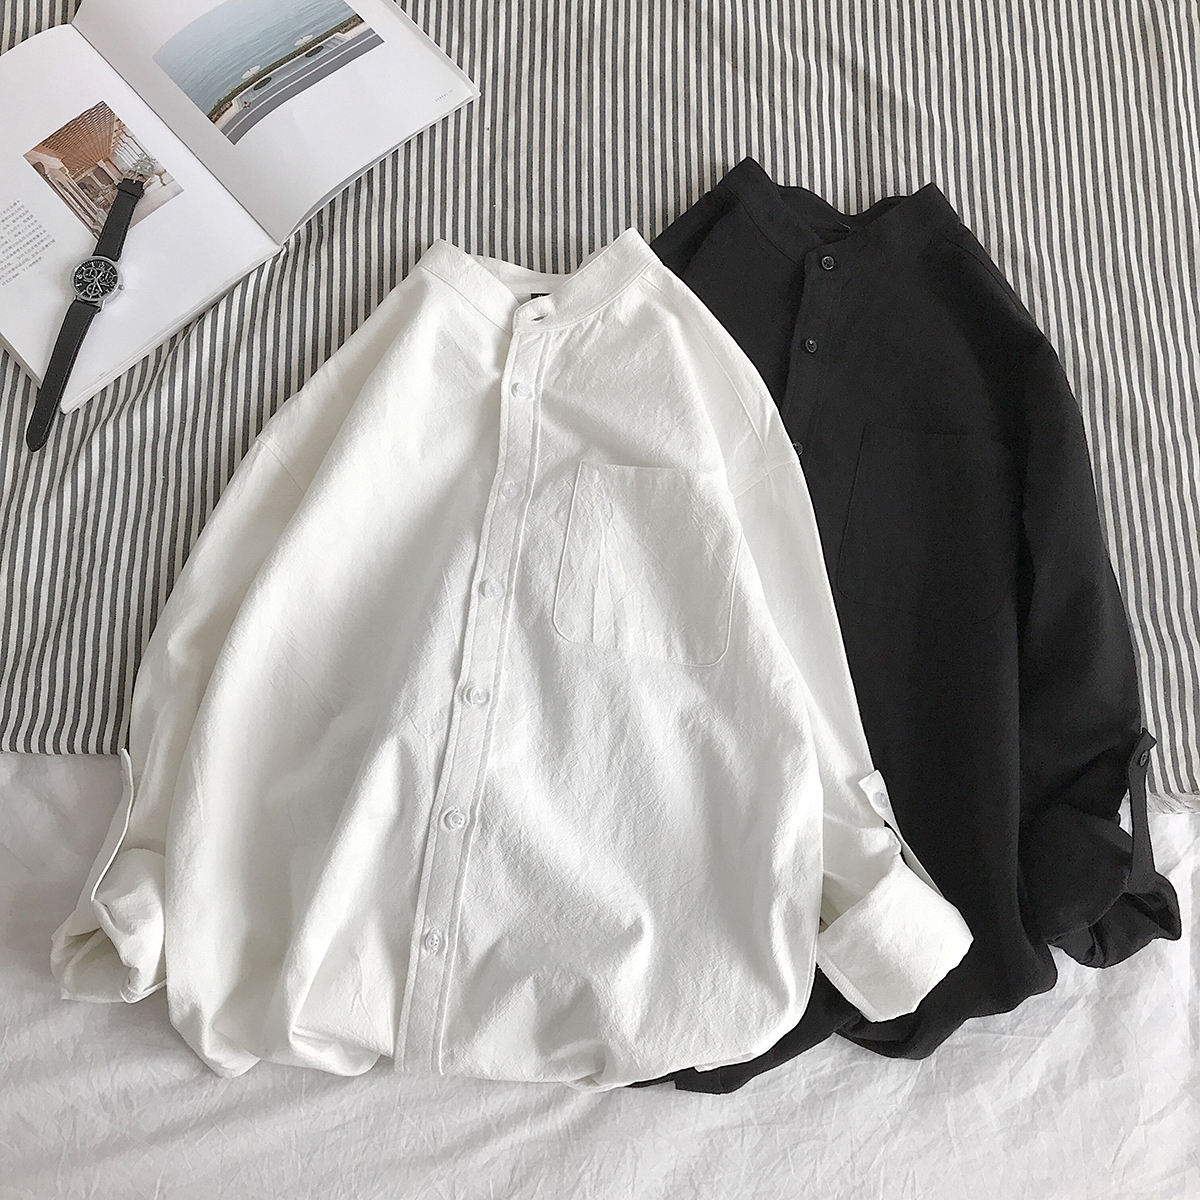 Simple Design Solid Colors Long Sleeve Shirts Korean Fashion Mandarin Collar 100% Cotton White Black Shirt Soft and Comfort 6